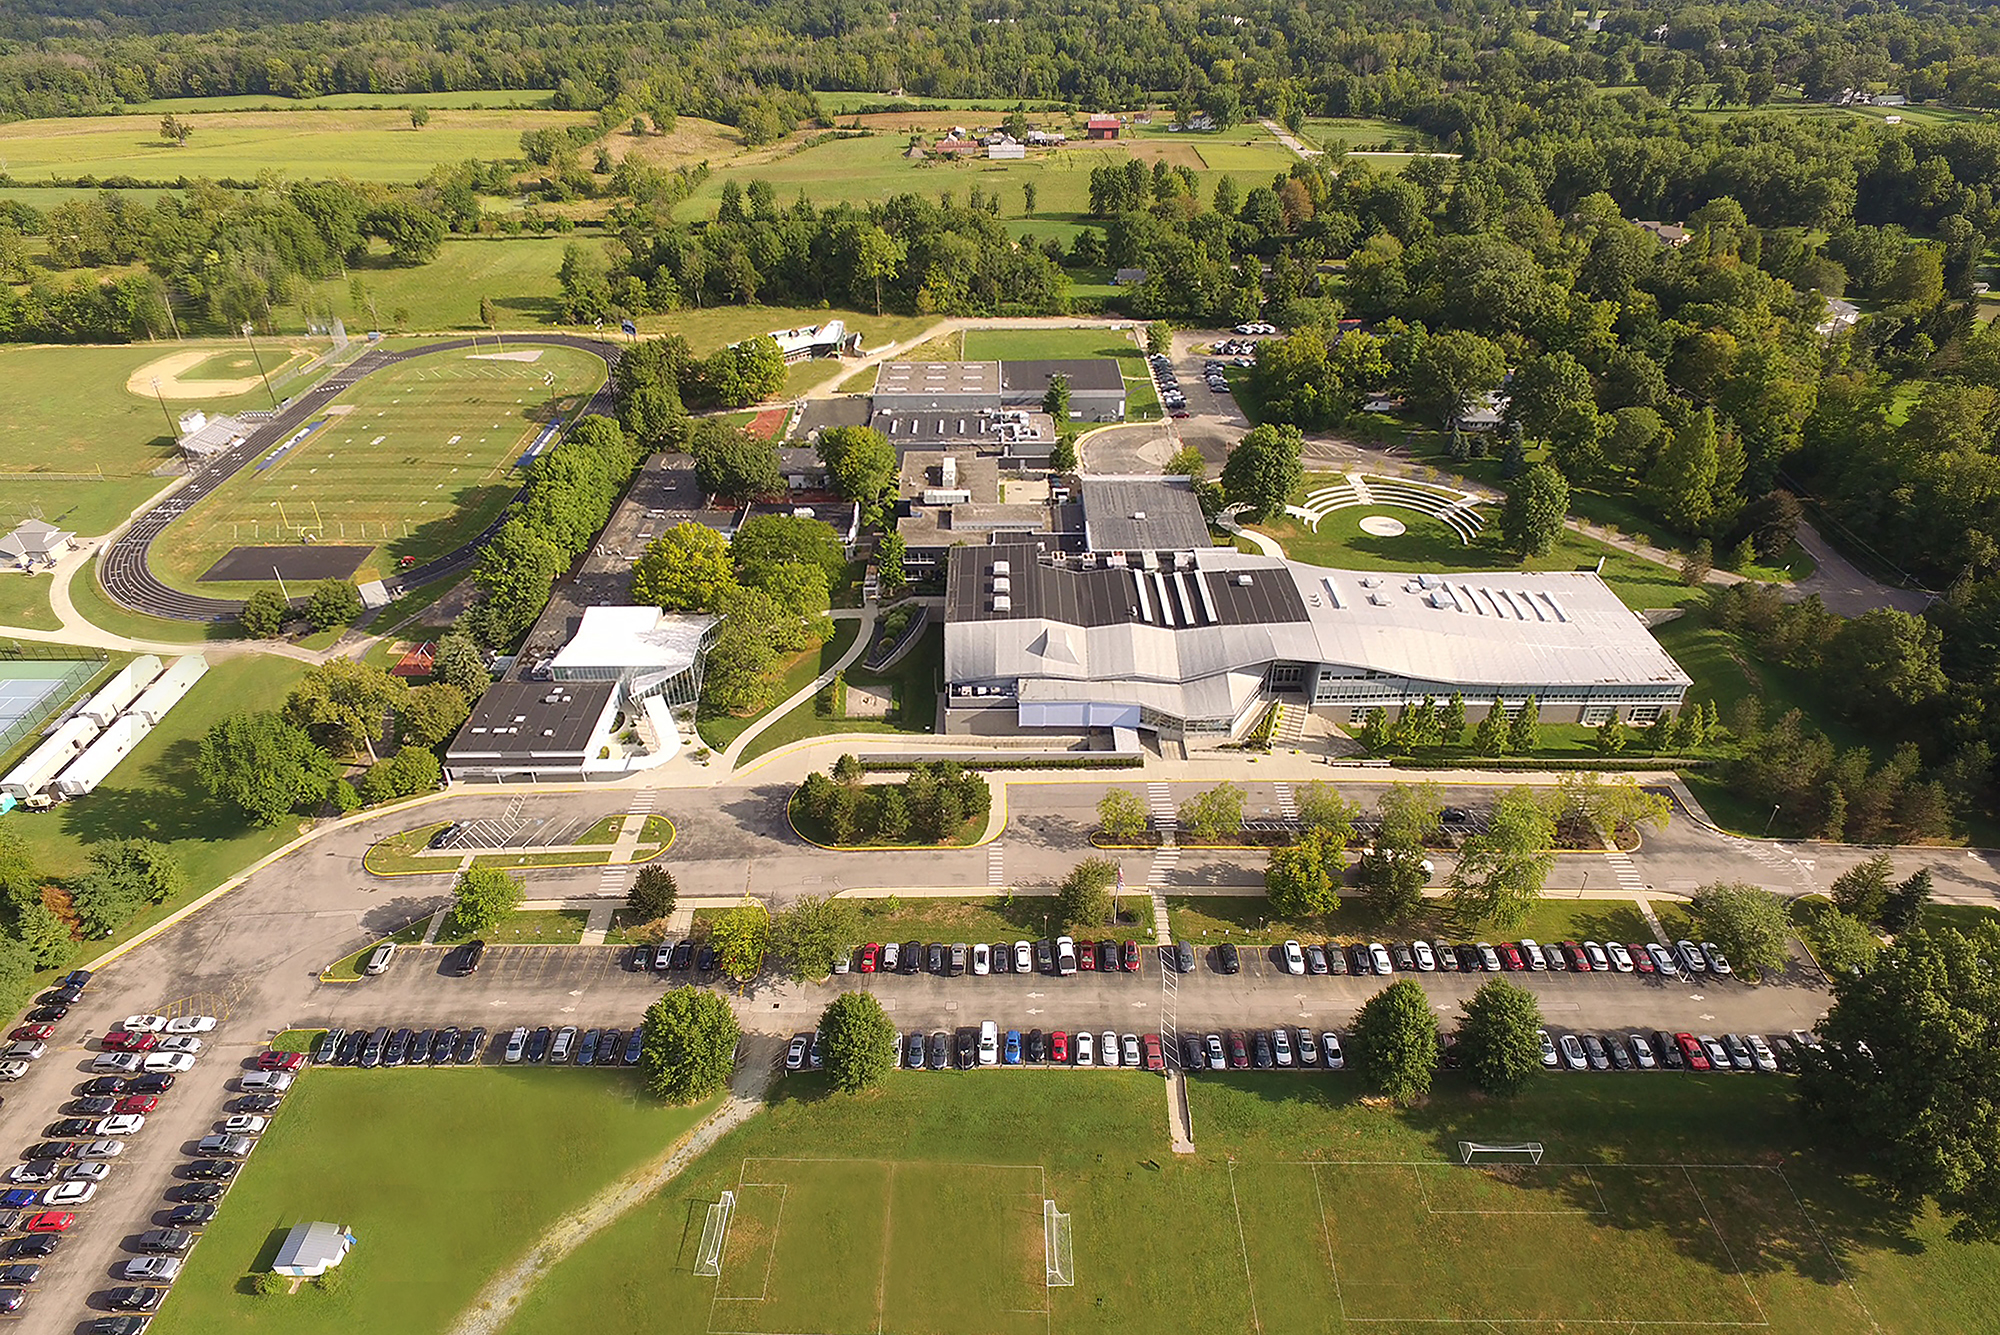 Birdseye view of campus